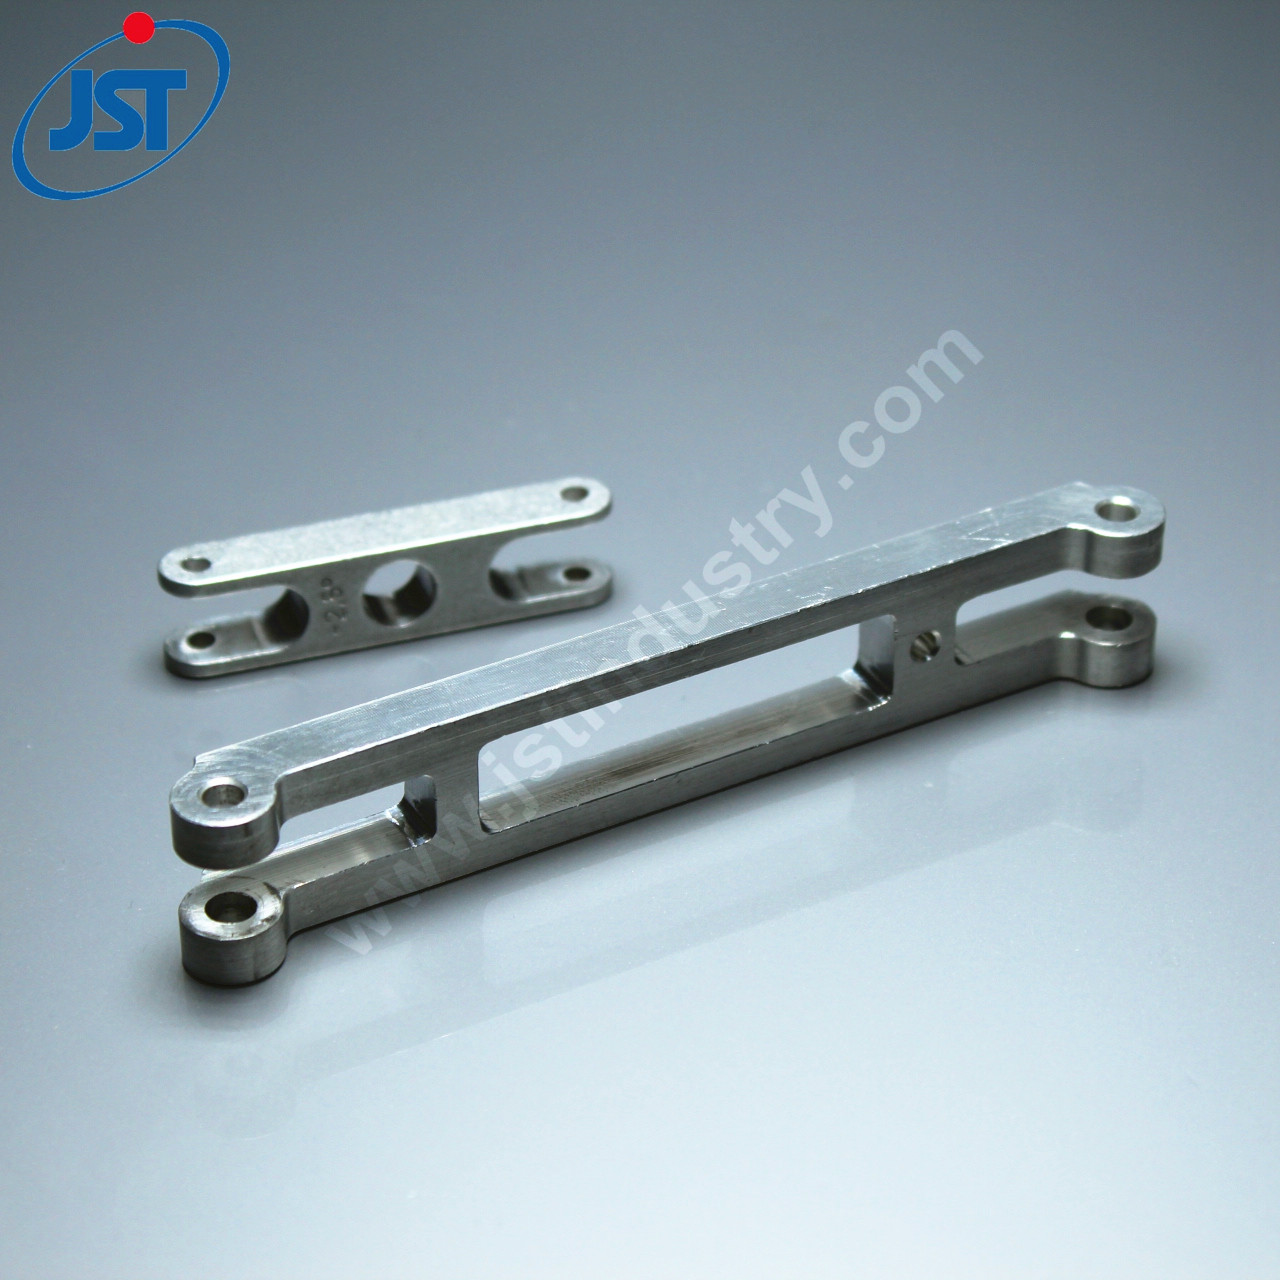 How to use the precision cnc machining parts?